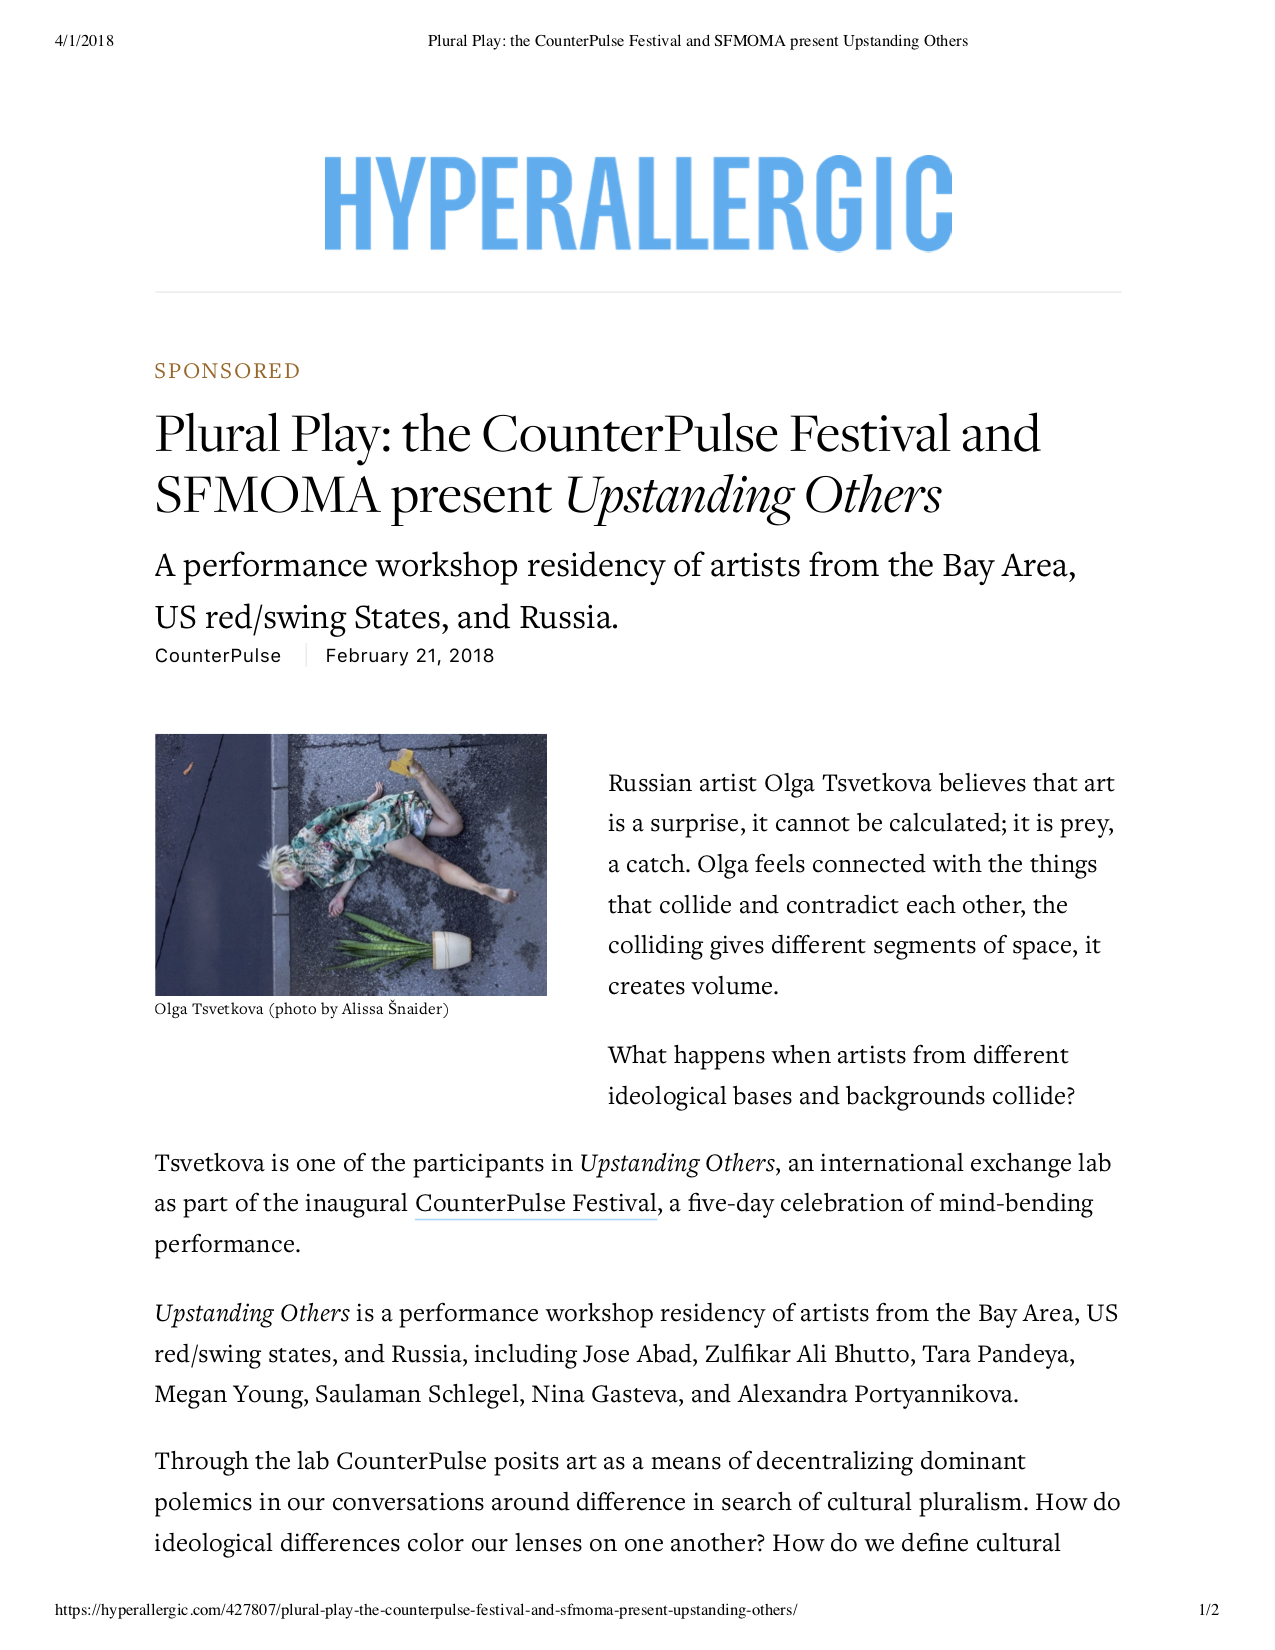 https://hyperallergic.com/427807/plural-play-the-counterpulse-festival-and-sfmoma-present-upstanding-others/